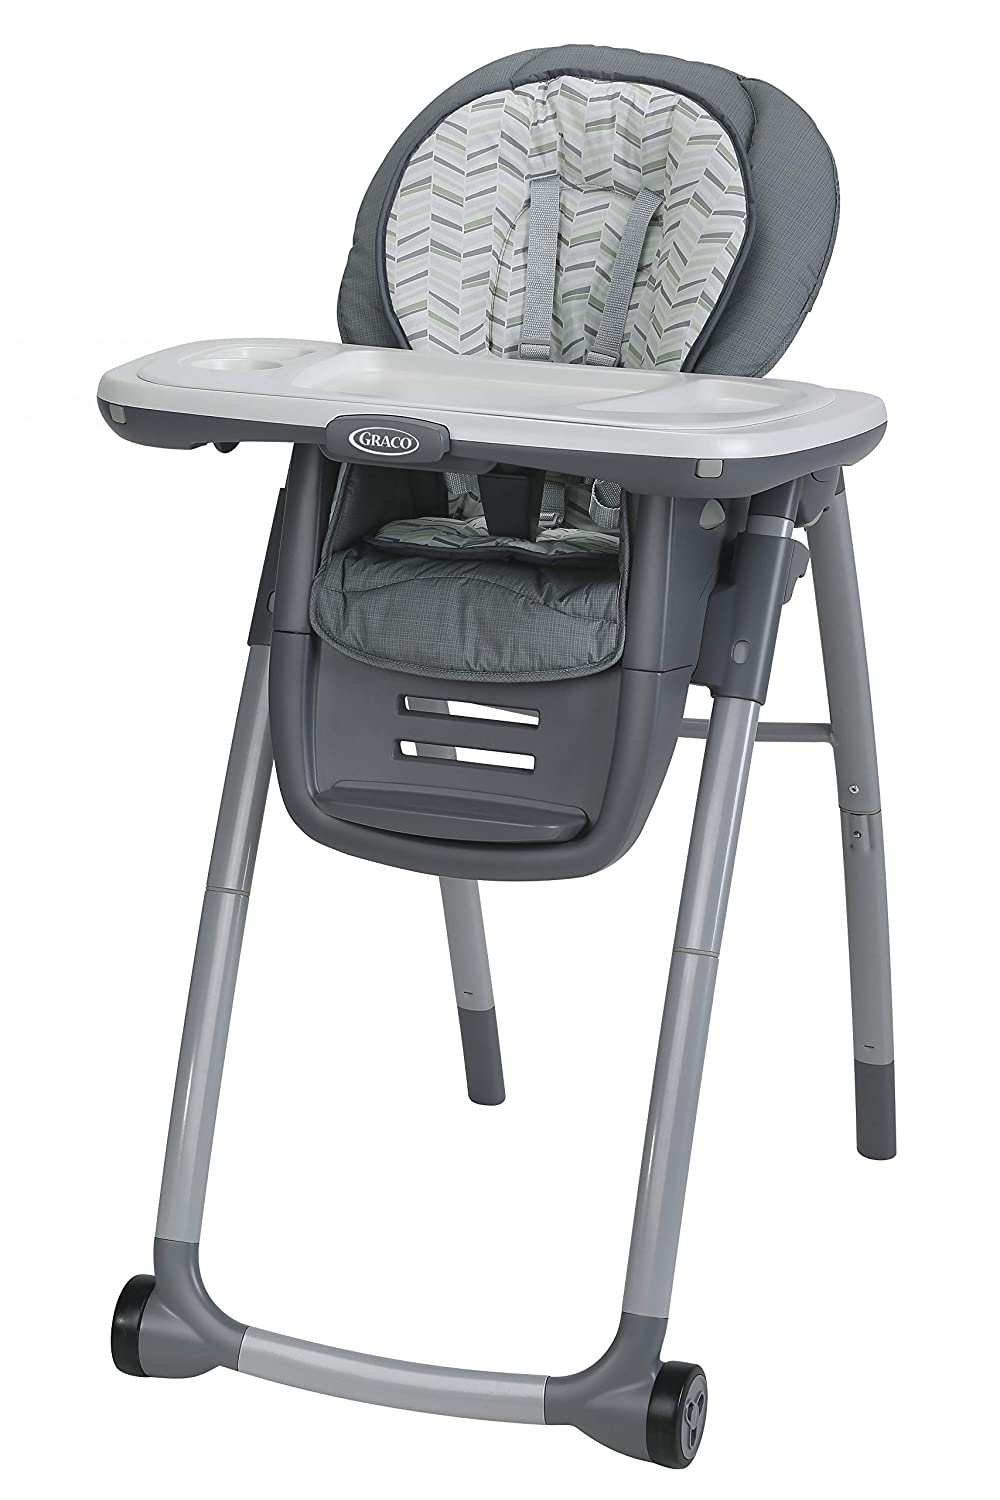 Graco Table2Table Premier Fold 7-in-1 Convertible High Chair, Landry, One Size Graco Baby 2022439